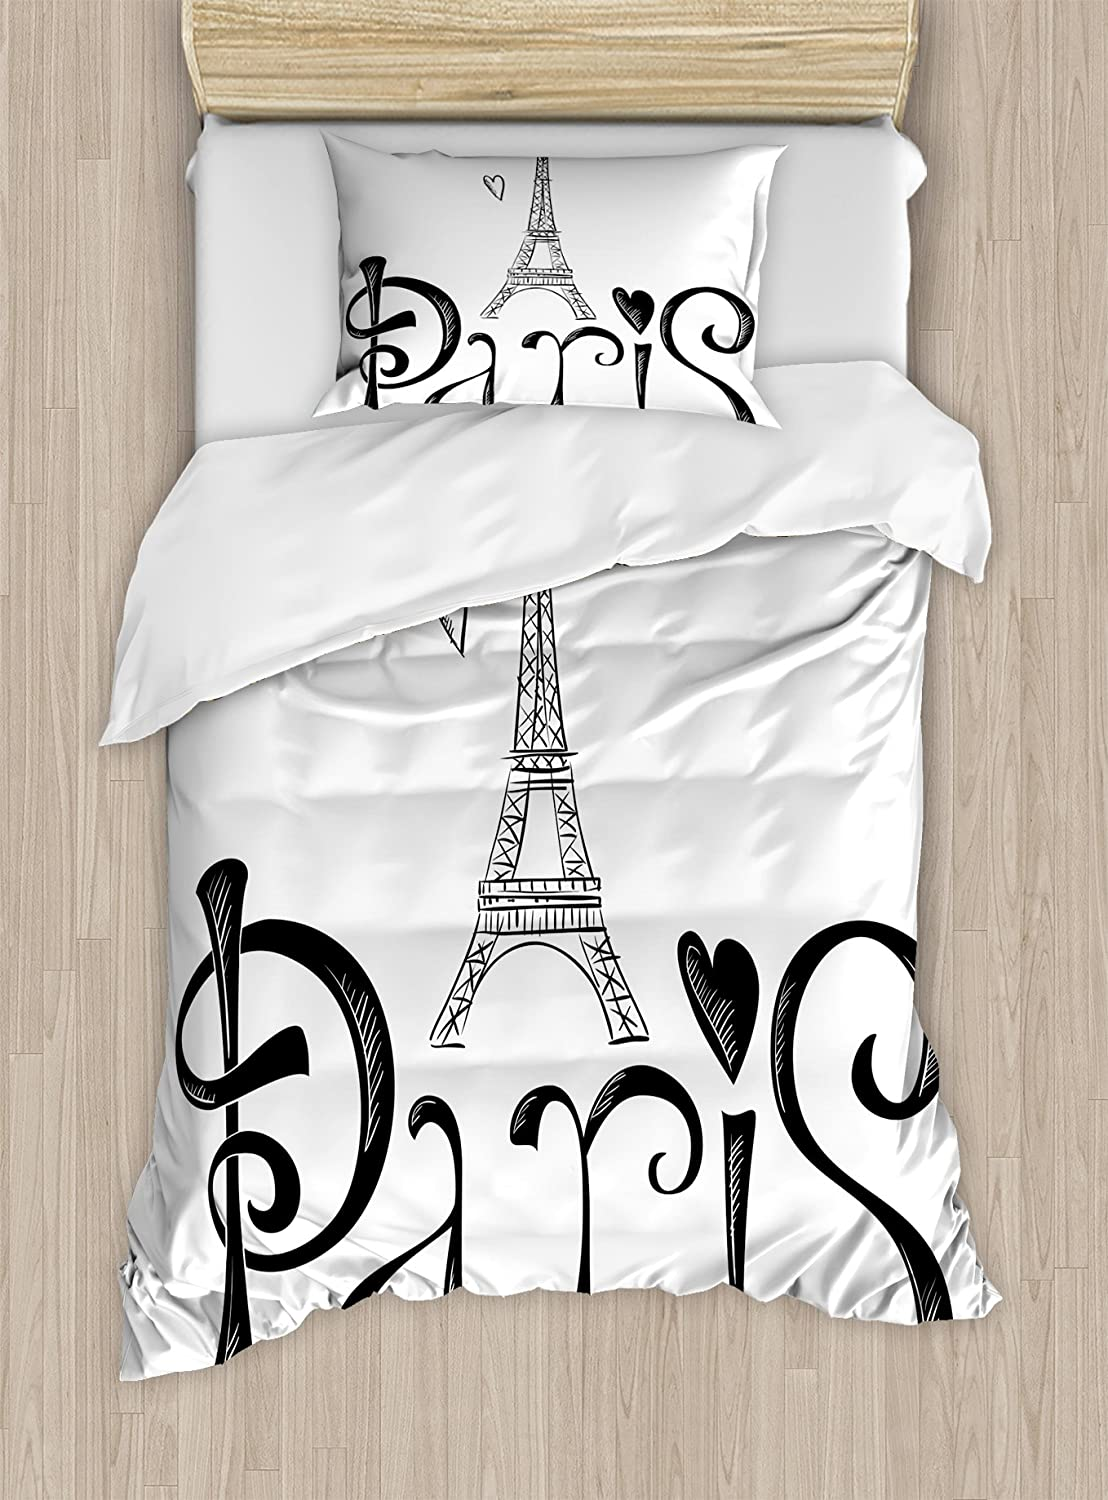 Ambesonne Paris Duvet Cover Set, Illustration with Eiffel Tower France Heart Shapes Silhouette Vacation Theme Art, Decorative 2 Piece Bedding Set with 1 Pillow Sham, Twin Size, Black and White